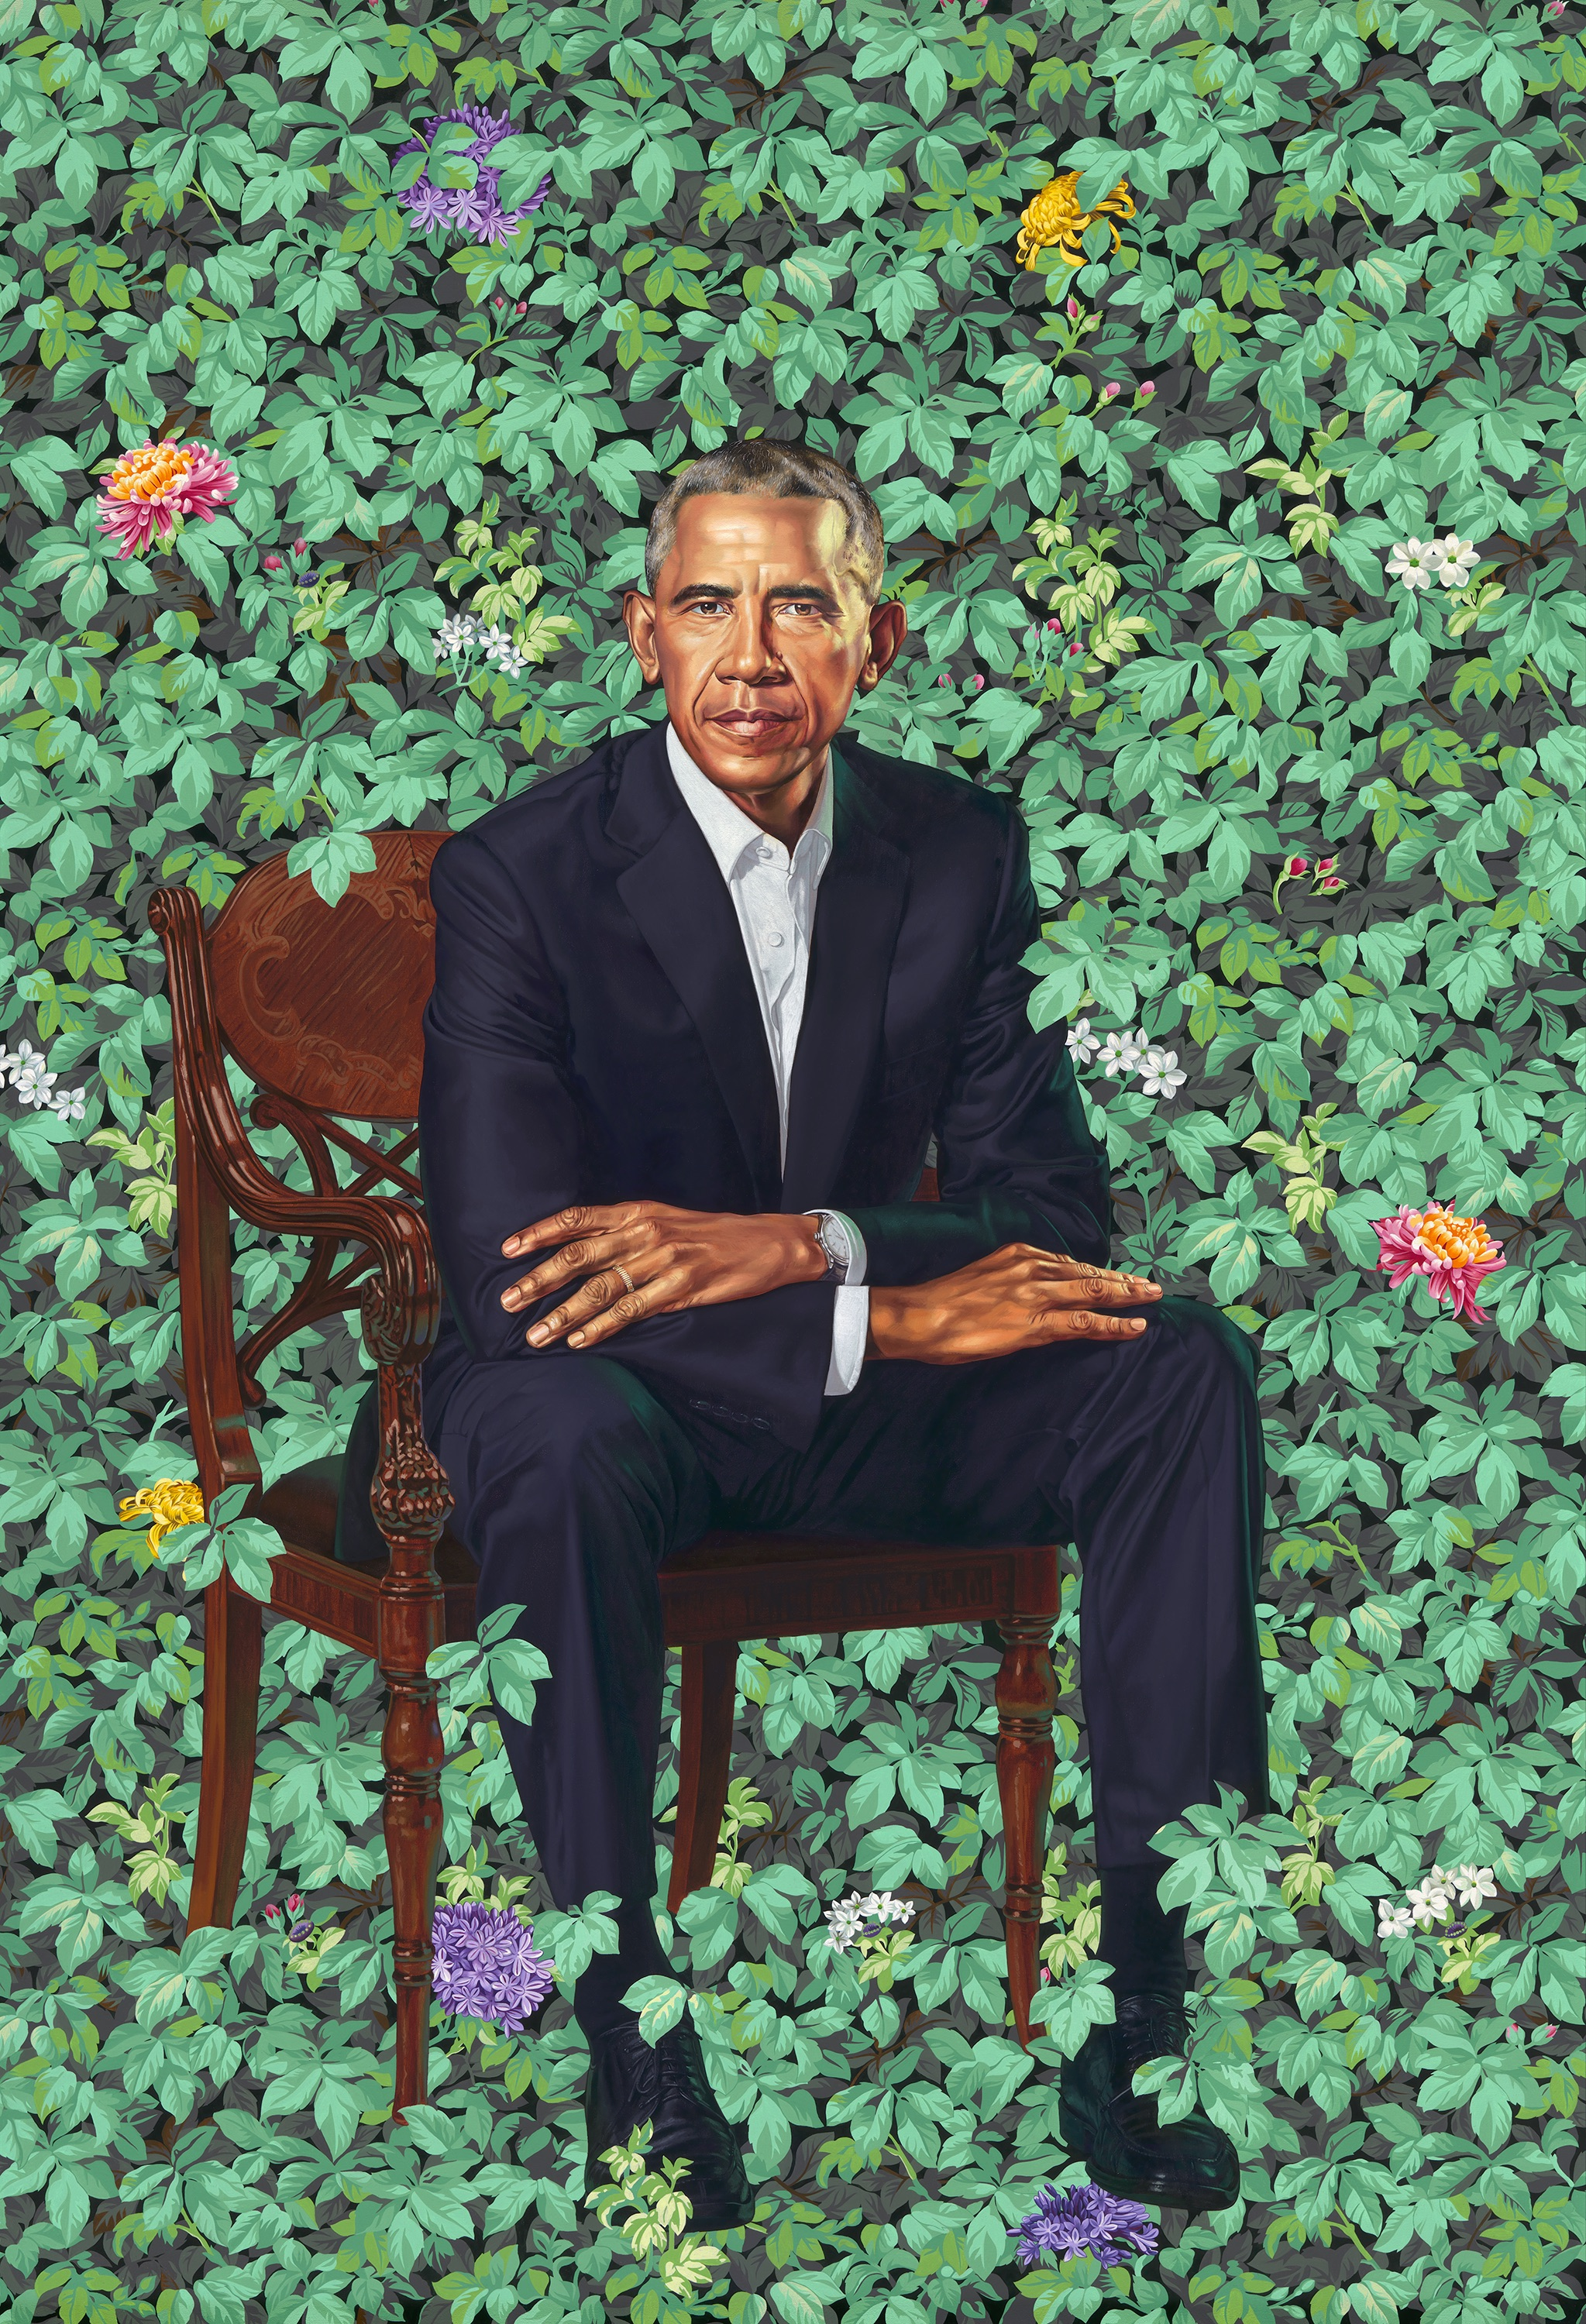 _Barack Obama_ by Kehinde Wiley, oil on canvas, 2018. National Portrait Gallery, Smithsonian Institution. The National Portrait Gallery is grateful to the following lead donors for their support of the Obama portraits: Kate Capshaw and Steven Spielberg; Judith Kern and Kent Whealy; Tommie L. Pegues and Donald A. Capoccia. © 2018 Kehinde Wiley